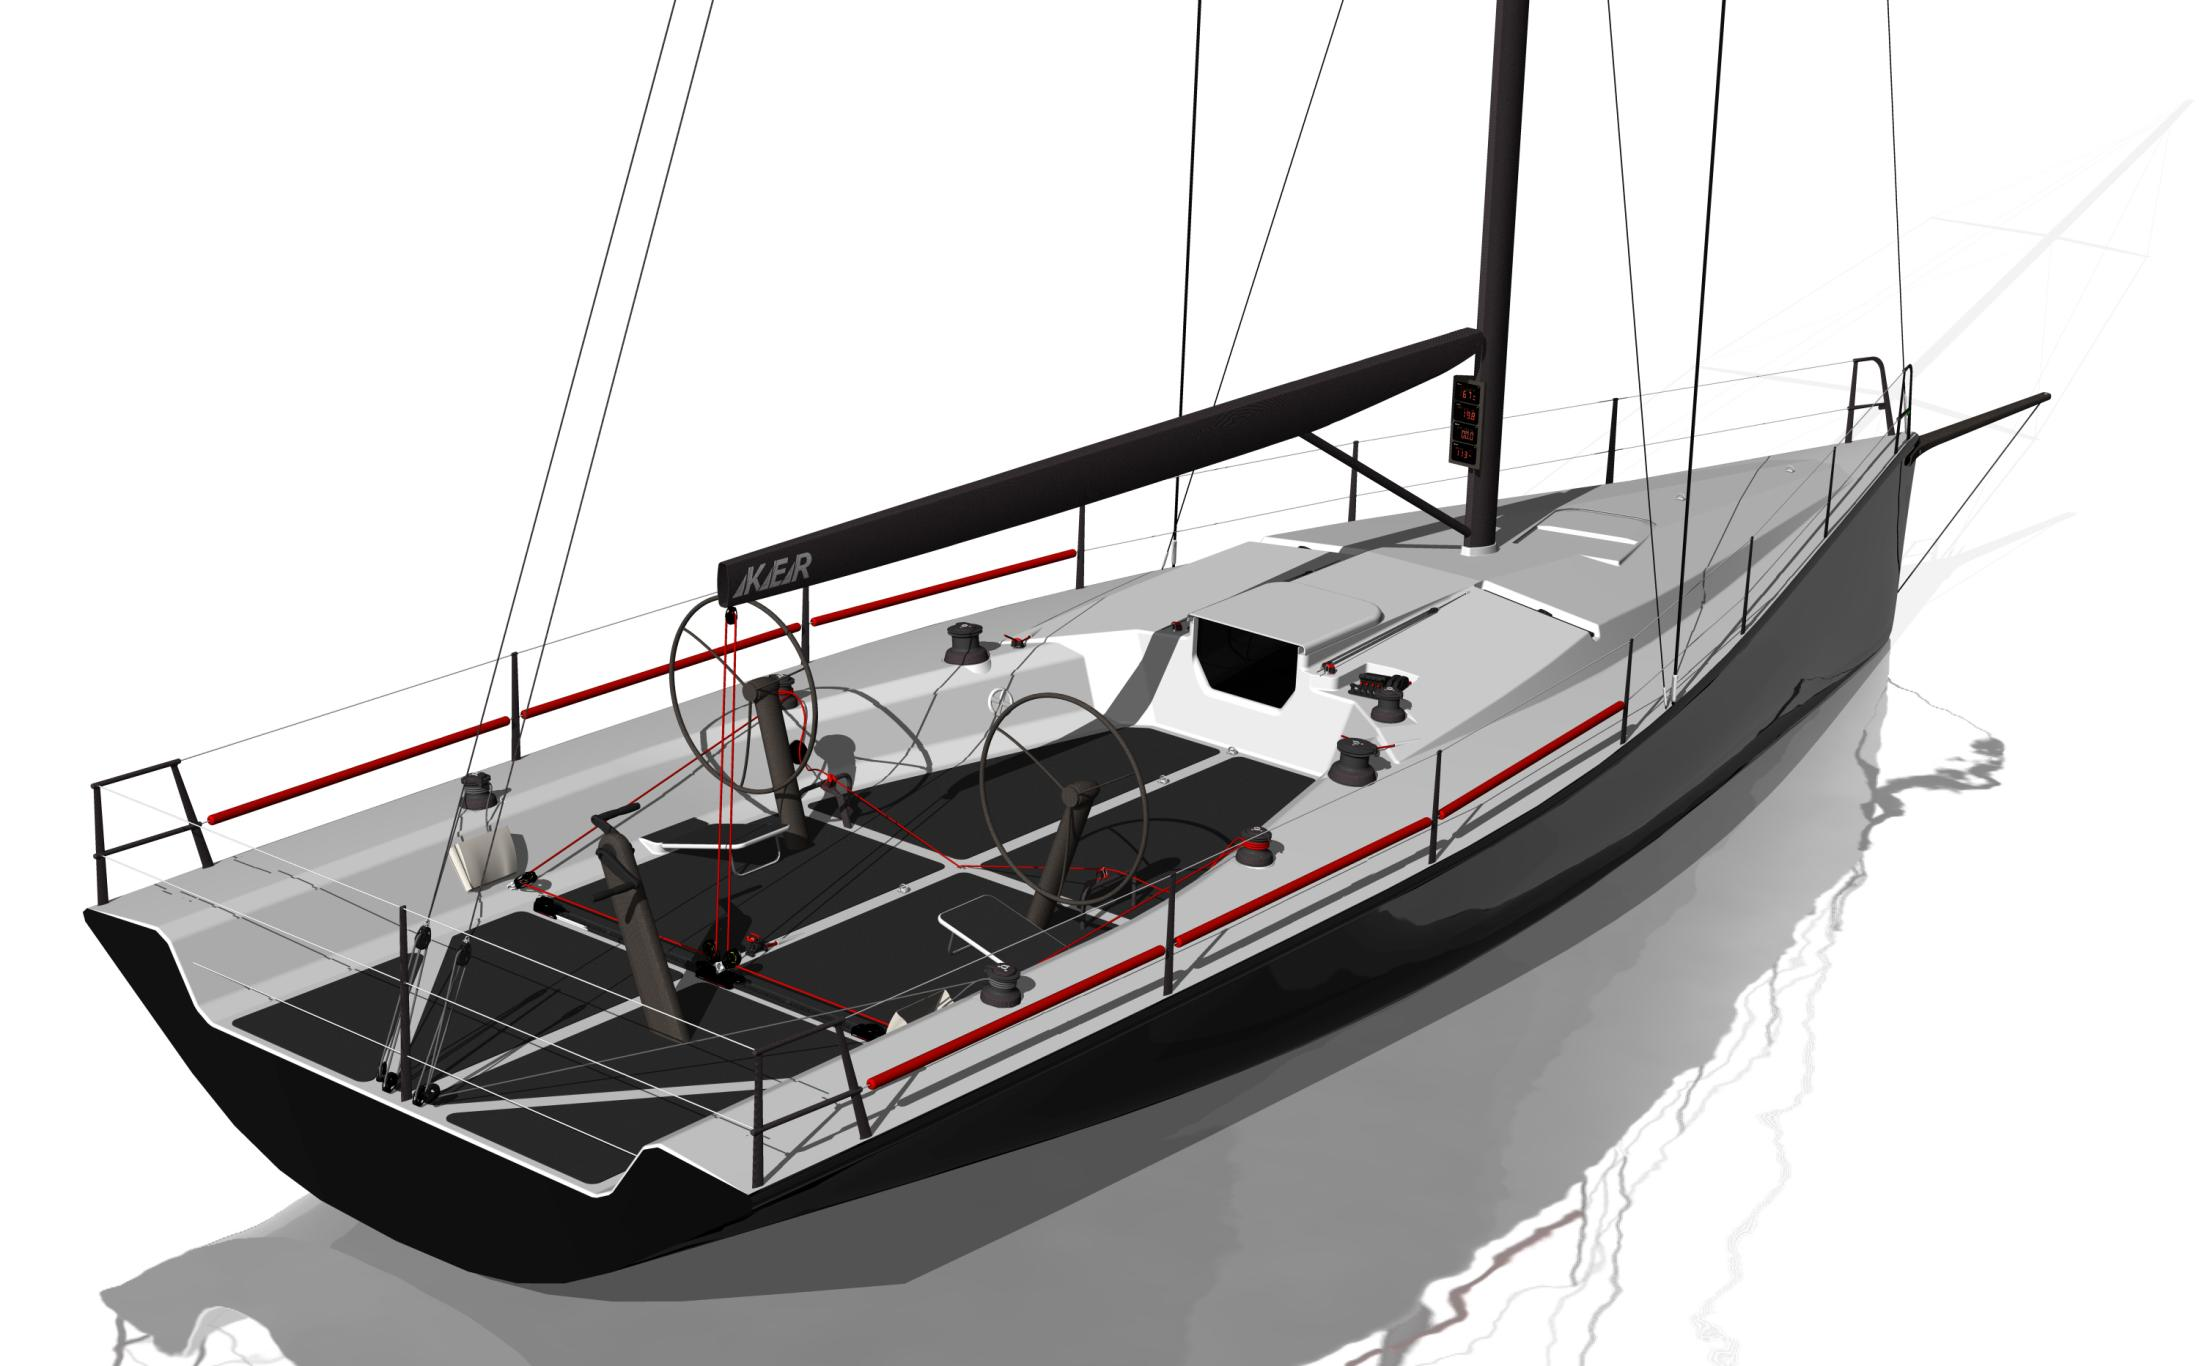 2017 McConaghy Ker 46 Plus Sail Boat For Sale Www